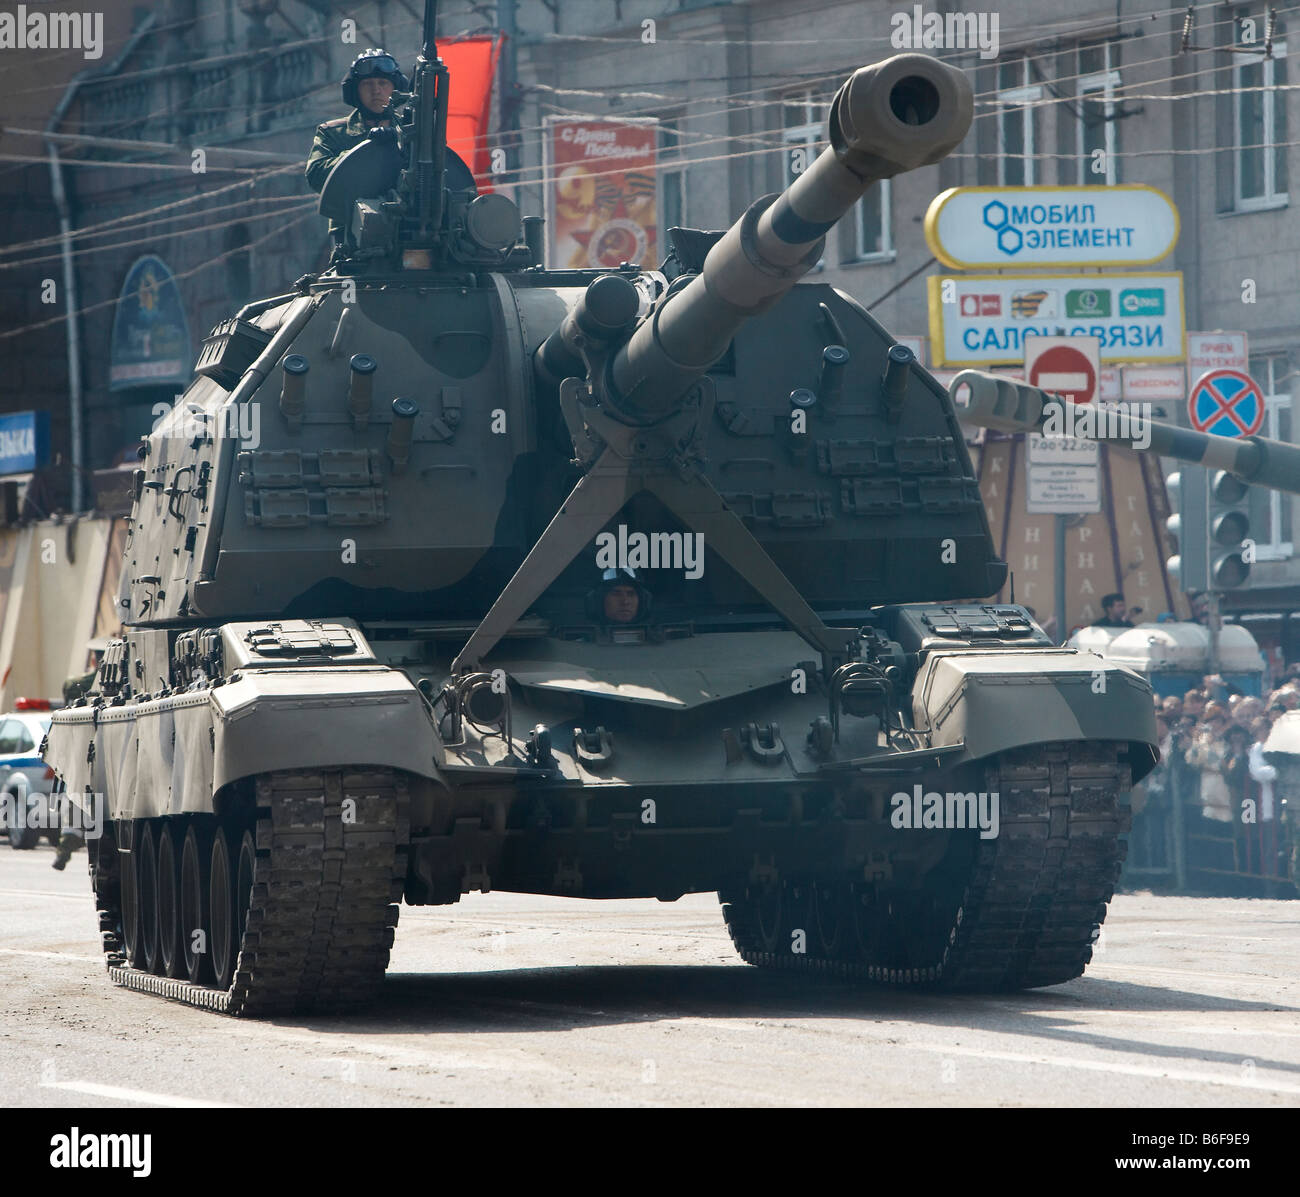 Russian Military Tank during parade, Victory Day Celebration, Moscow Russia - Stock Image